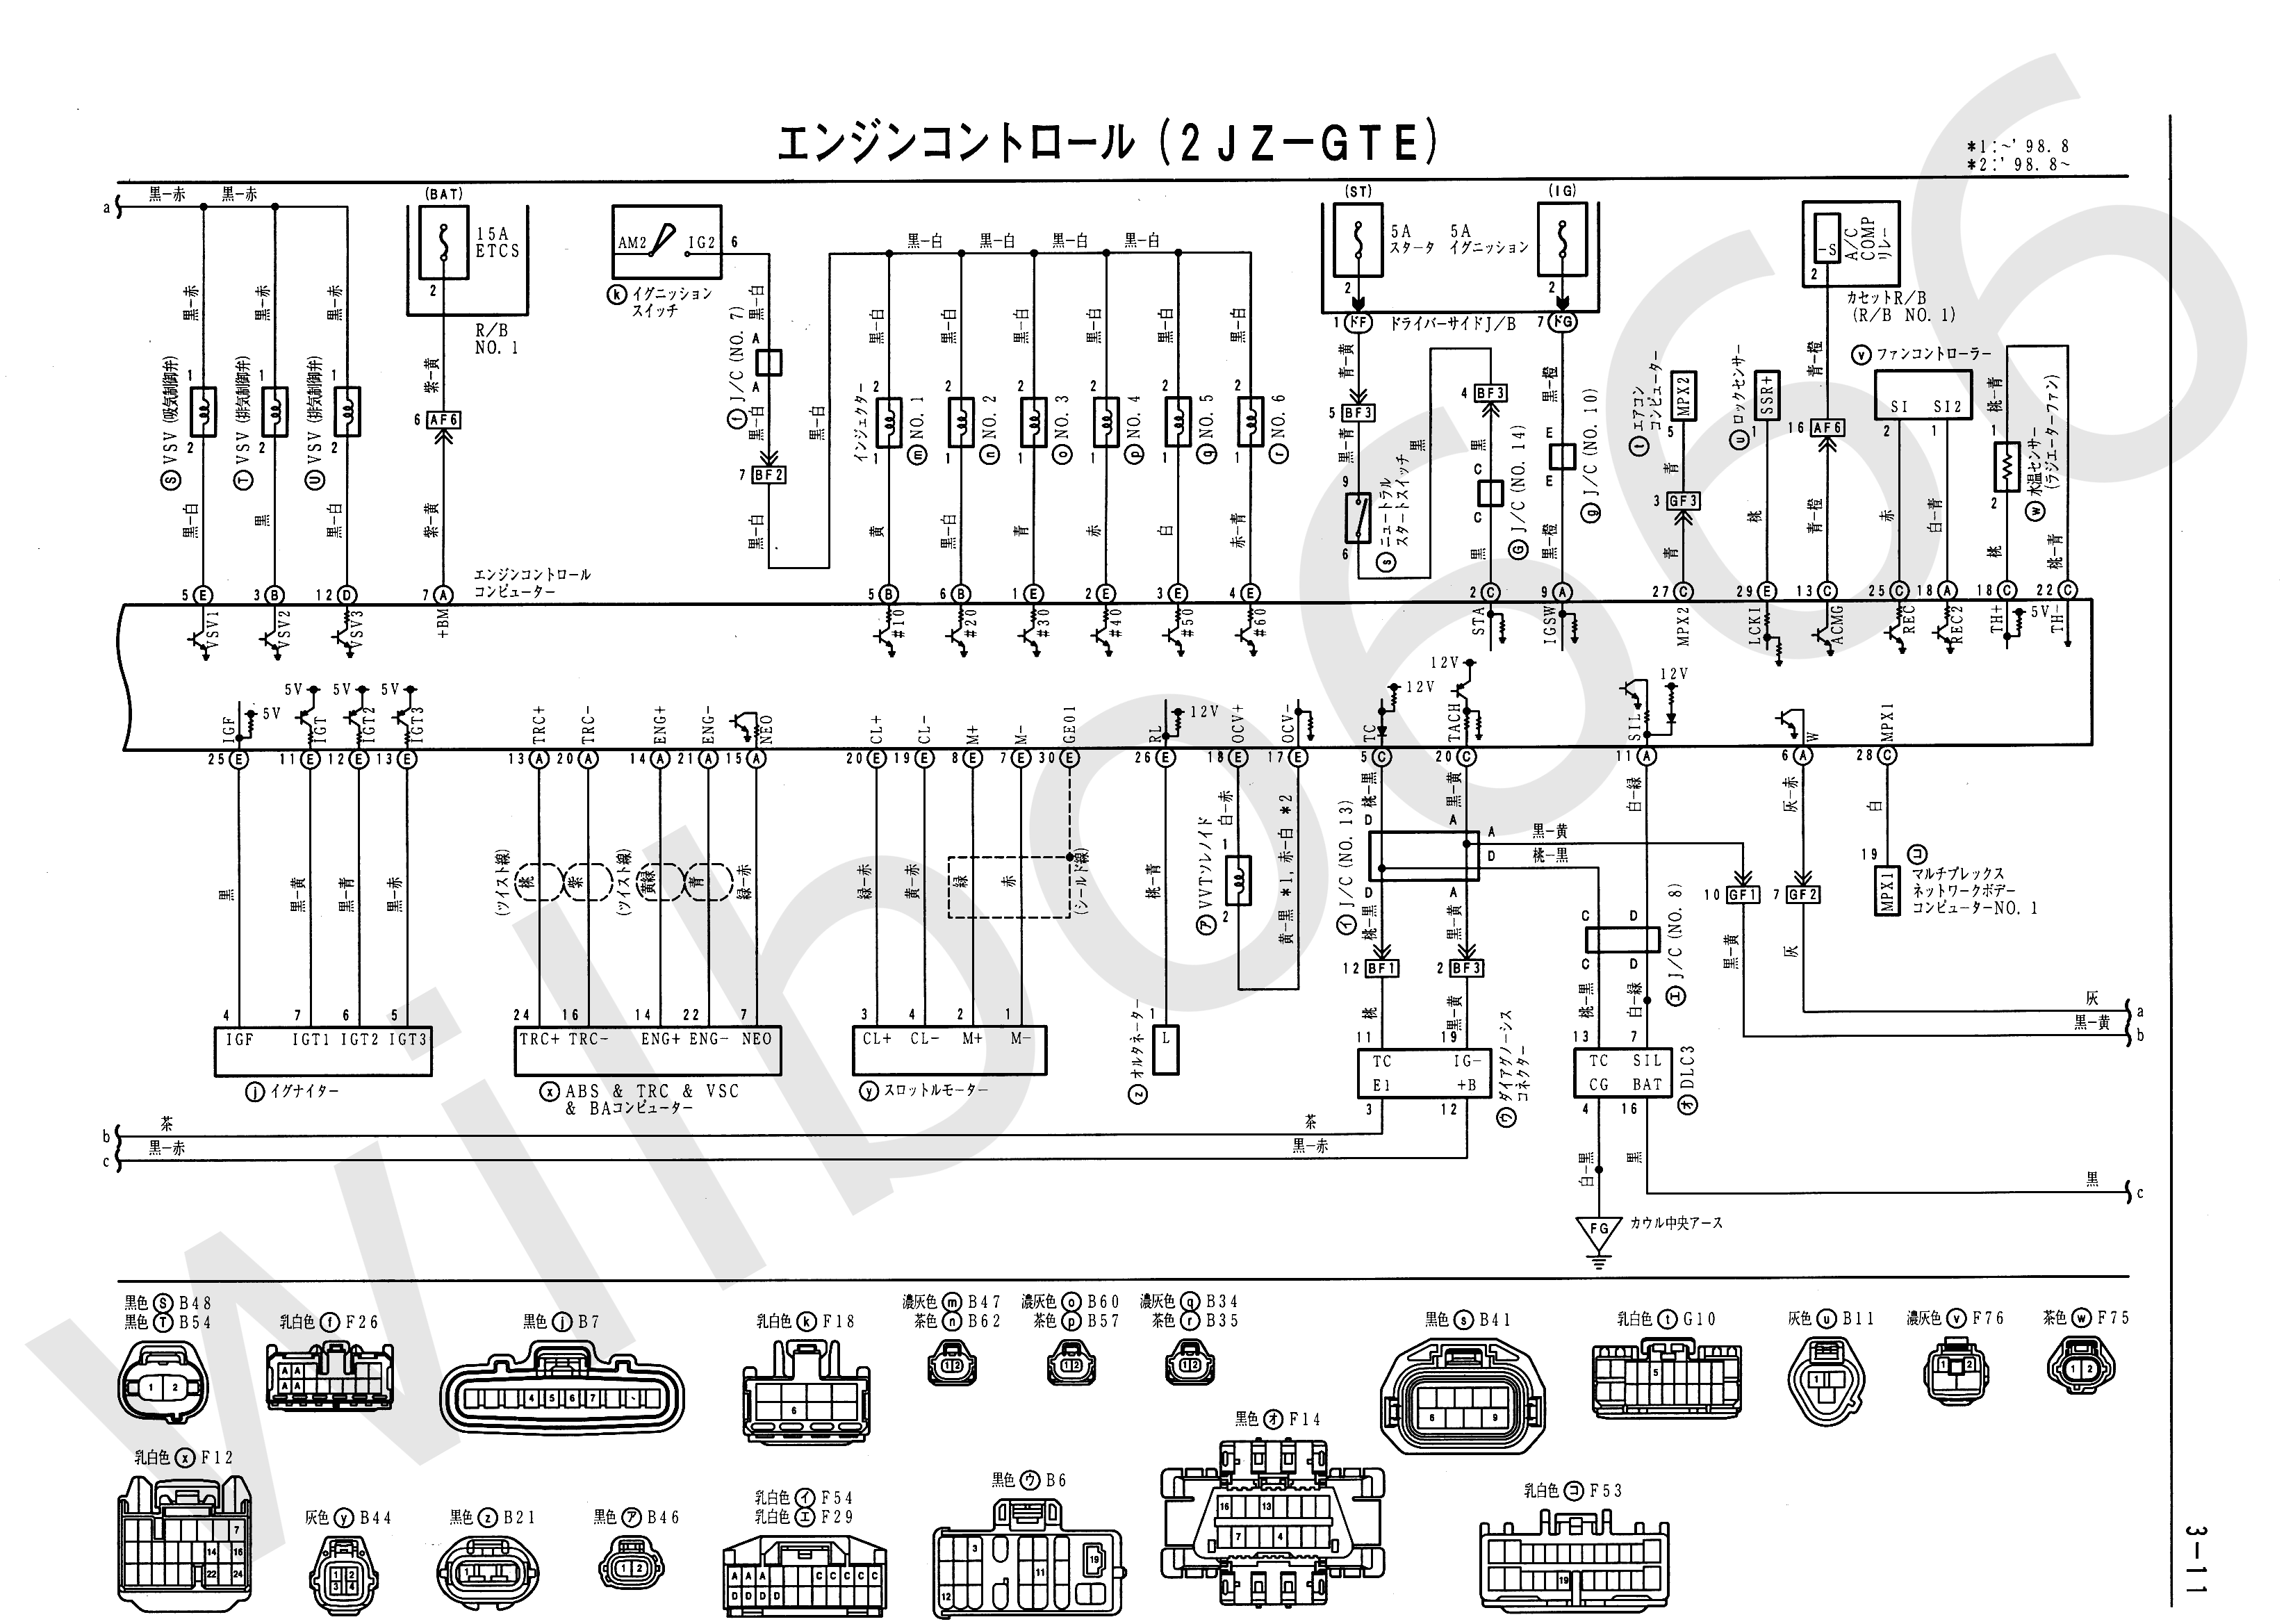 JZS161 Electrical Wiring Diagram 6748505 3 11 2jz ge wiring diagram pdf wiring diagram simonand 2jz wiring diagram at gsmportal.co